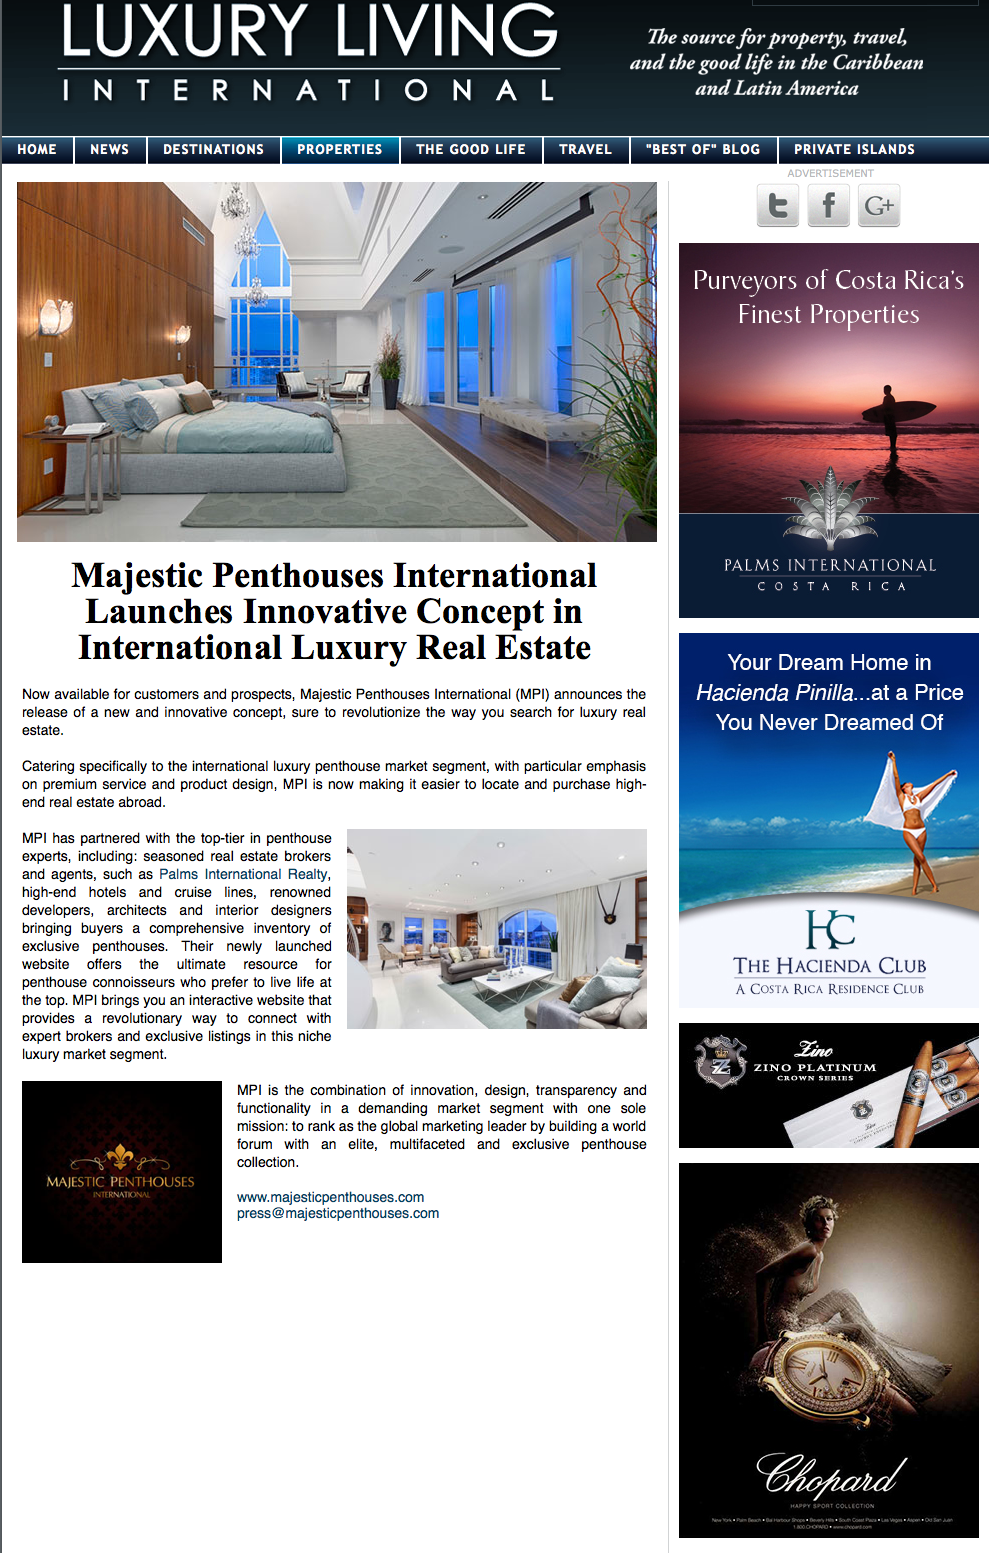 Majestic Penthouses Global Launch featured in Luxury Living International | Press | Majestic Penthouses International